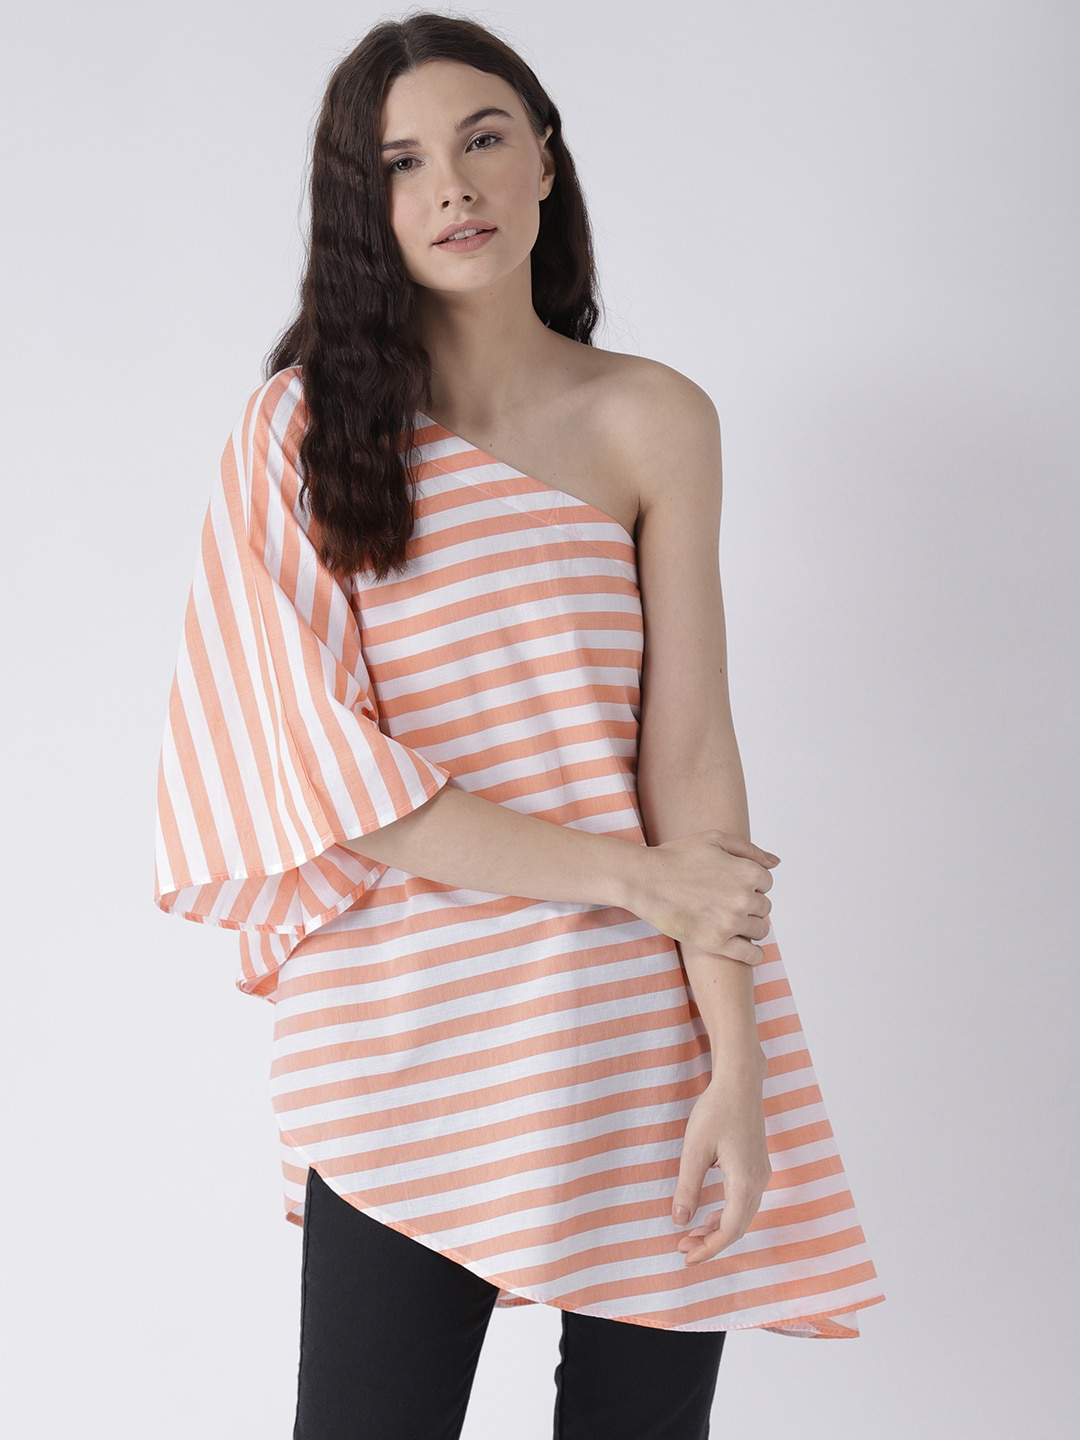 0a010d61f2a76 One Shoulder Tops - Buy One Shoulder Tops Online in India